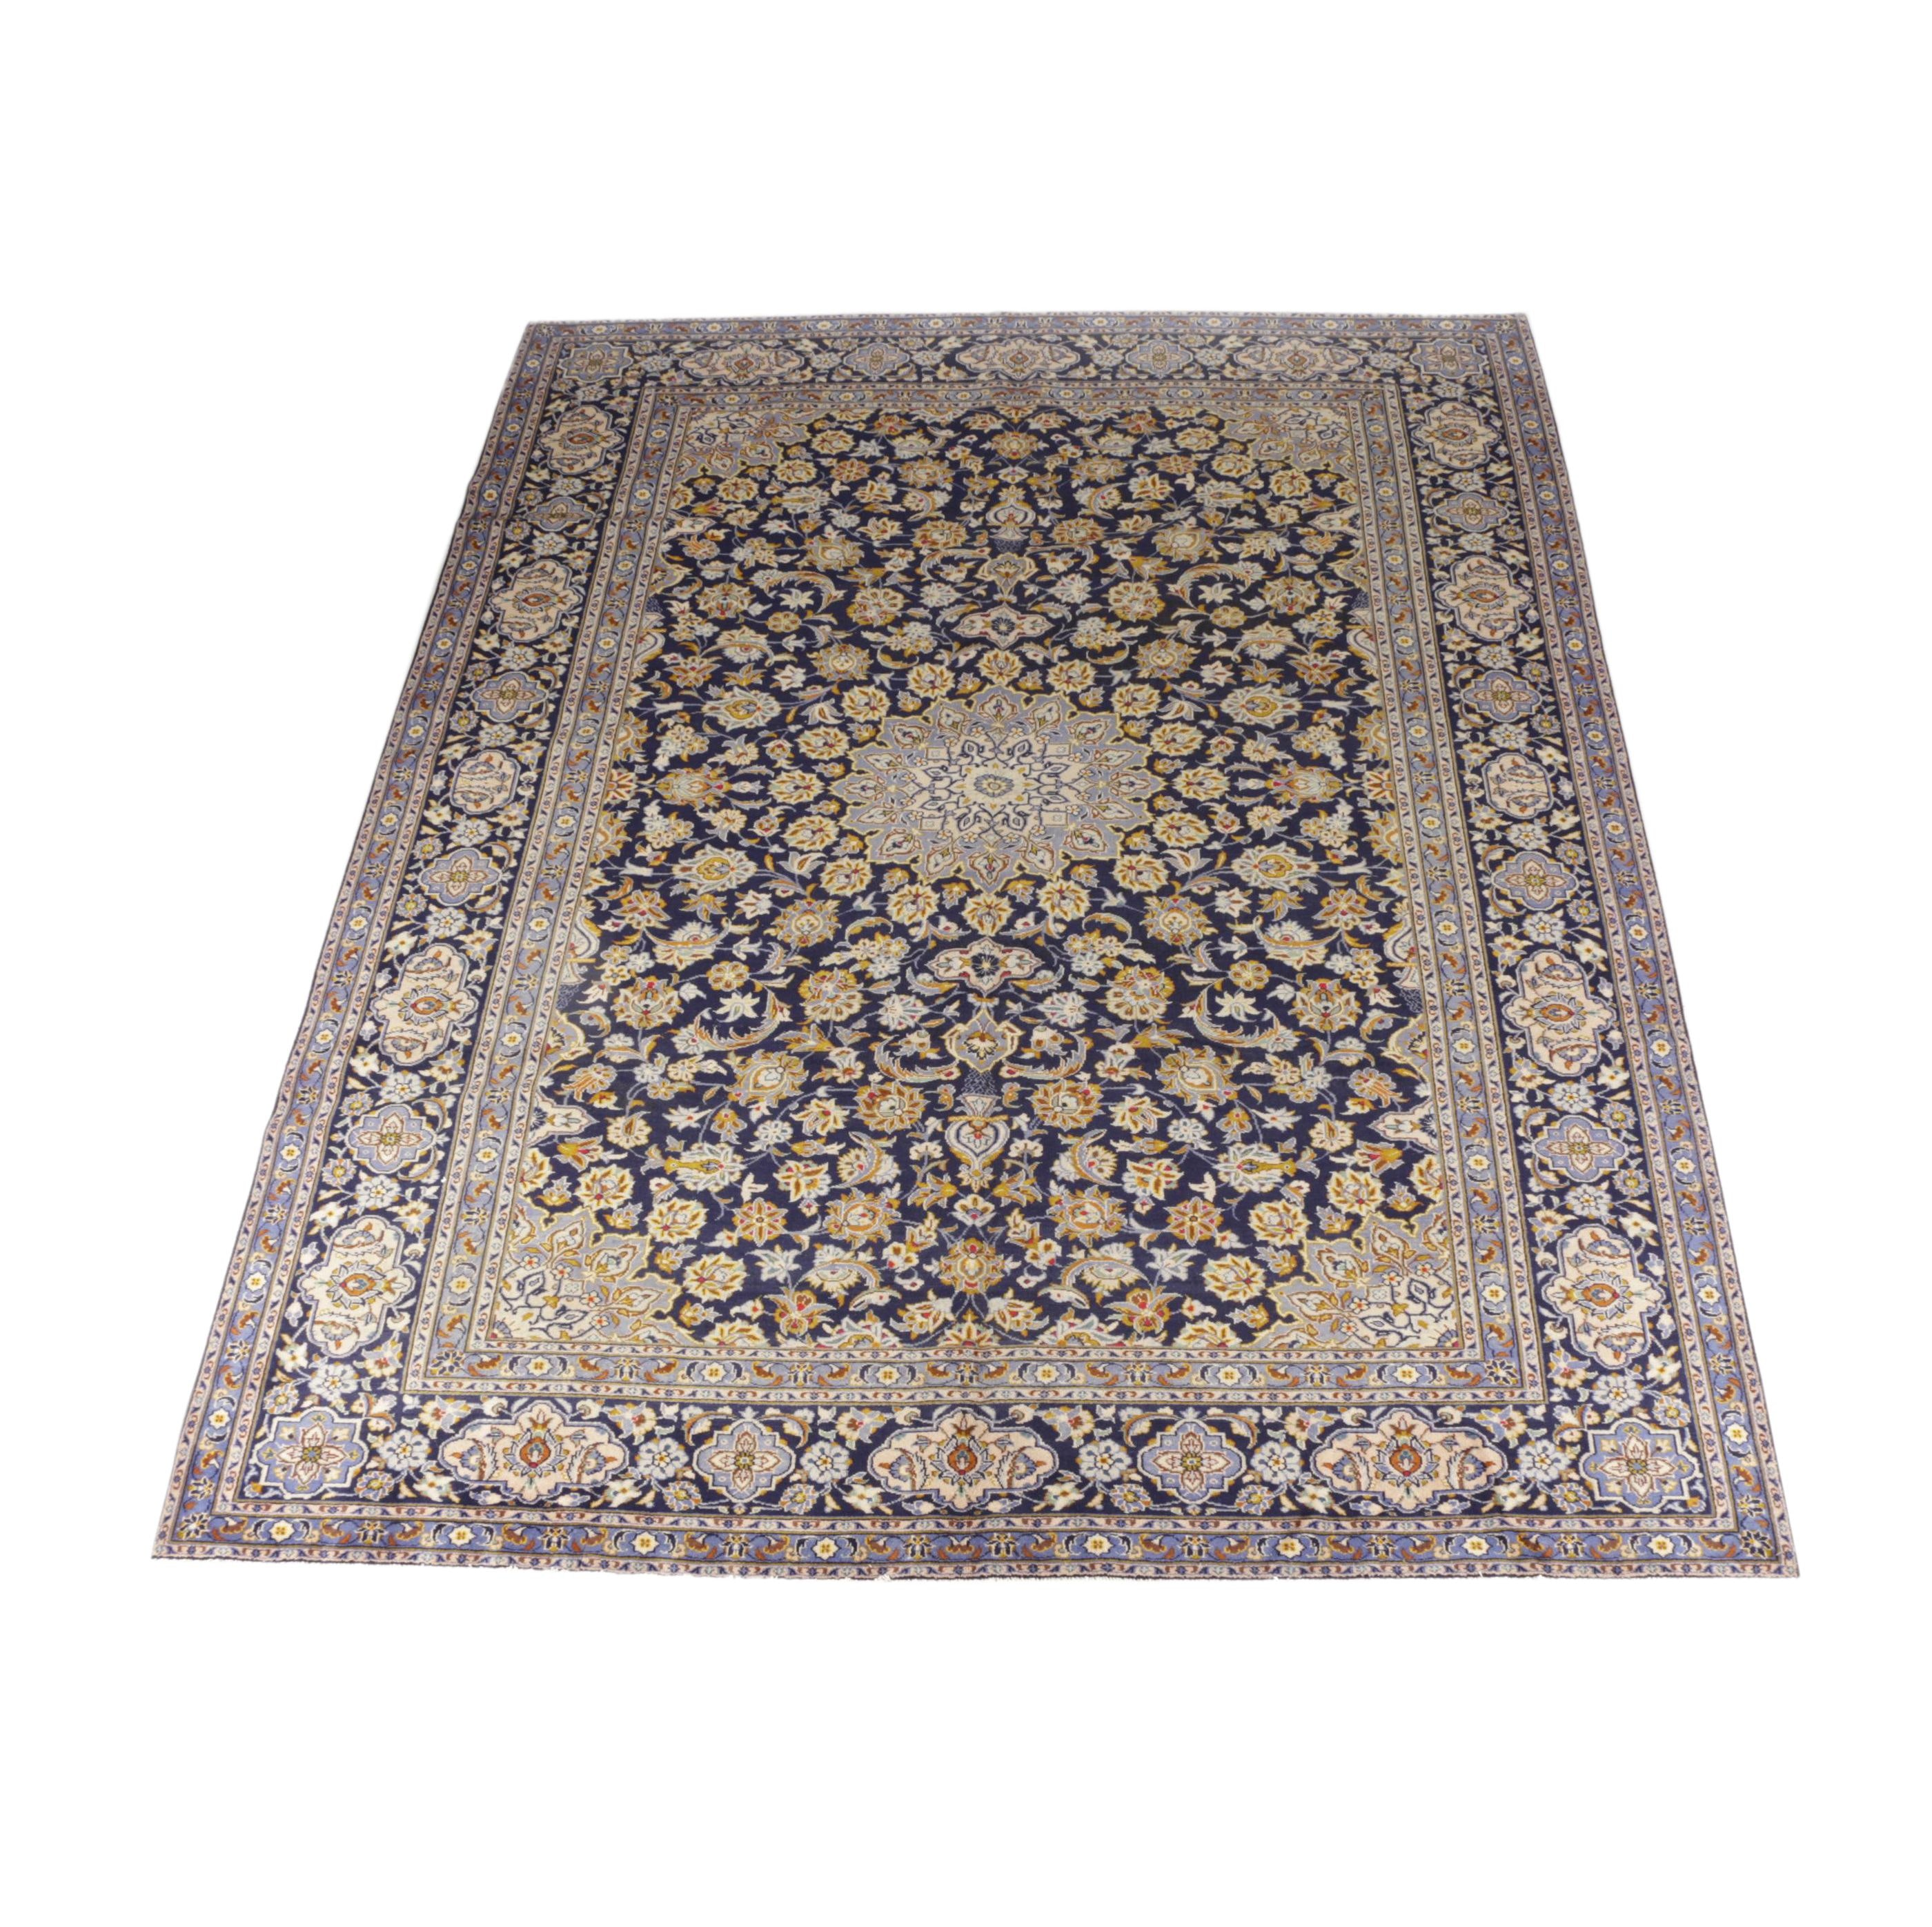 Large Hand-Knotted Tabriz Wool Area Rug